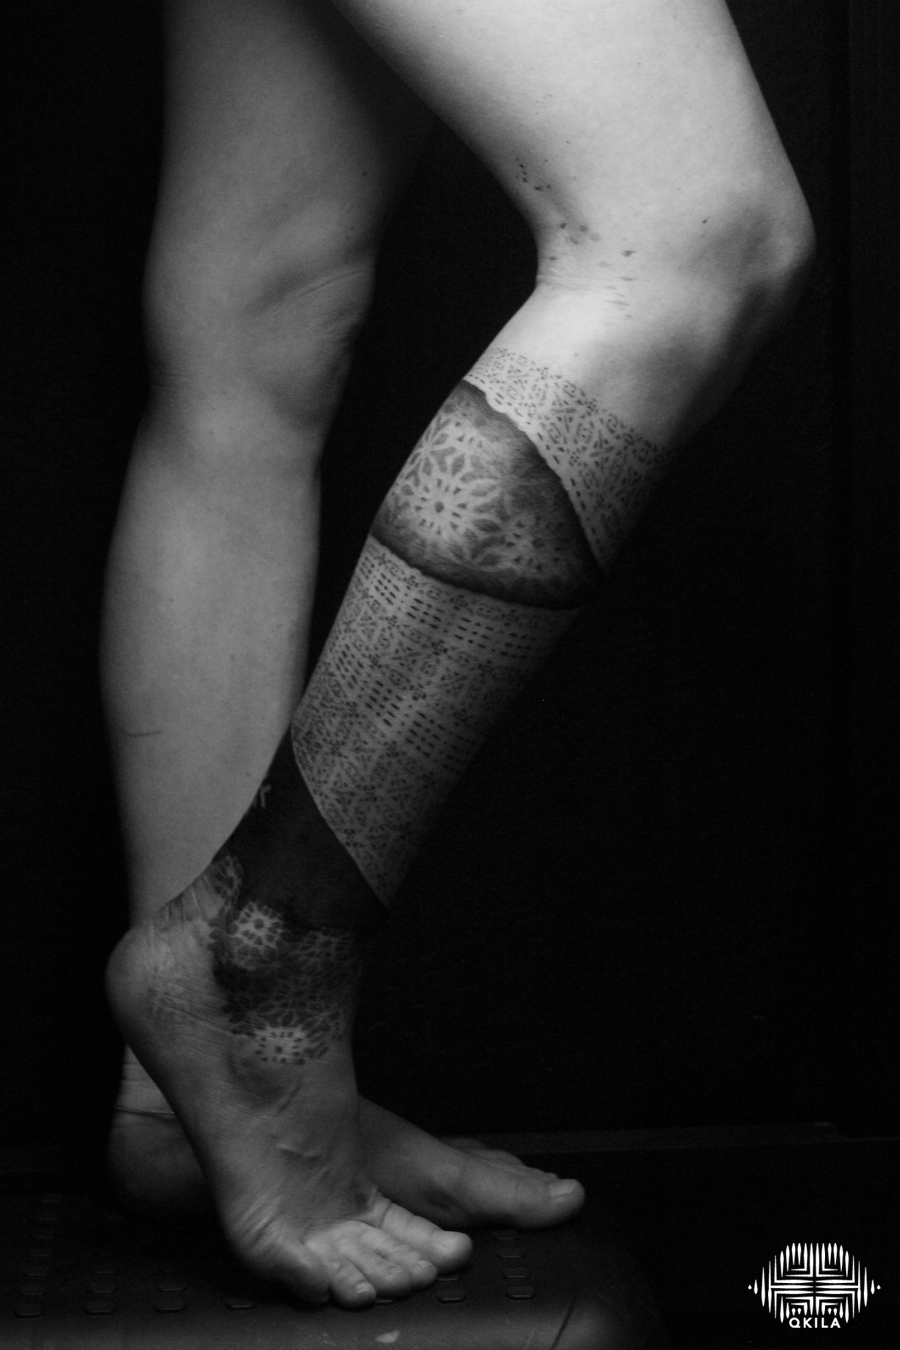 legg,patterns tattoo, op art, foot tattoo, dotwork tattoo, qkila,geometric tattoo, ethnique tattoo, les tatoués anonymes, nimes